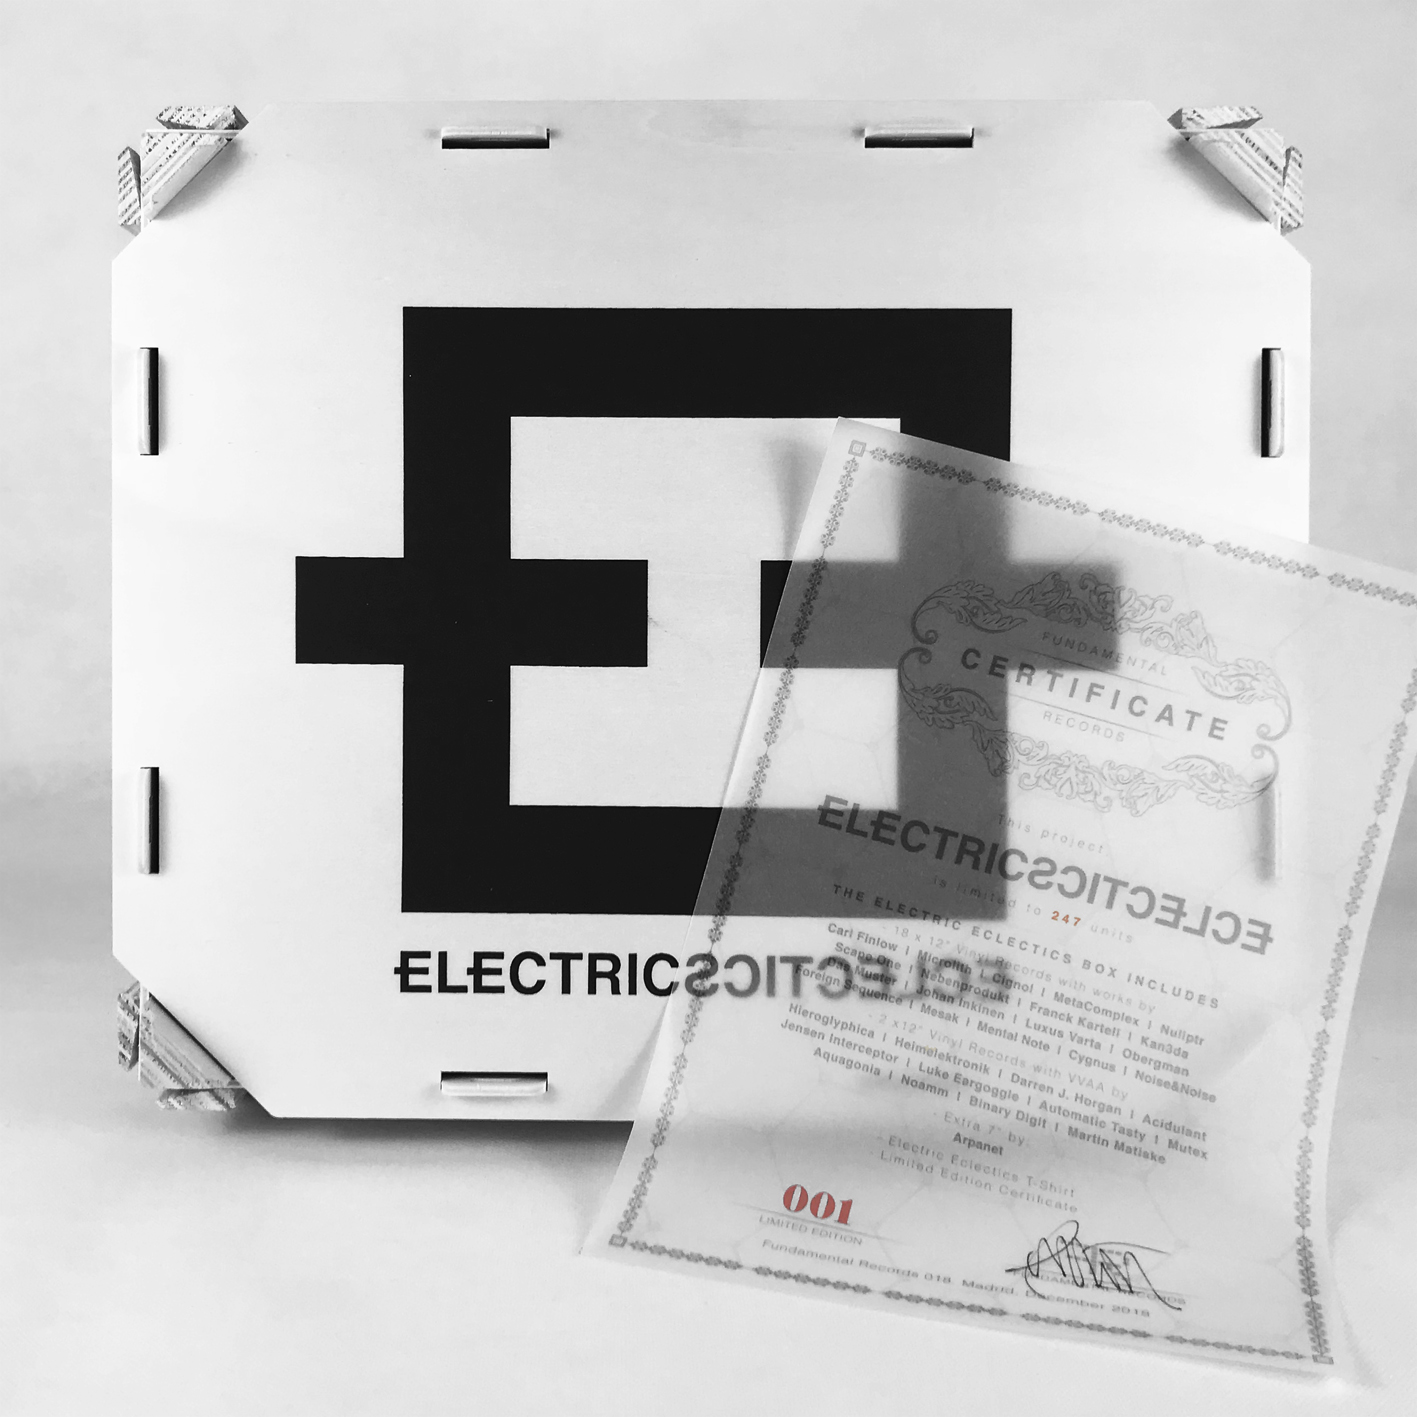 Electric Eclectics Full Box 31 Vinyl Records.